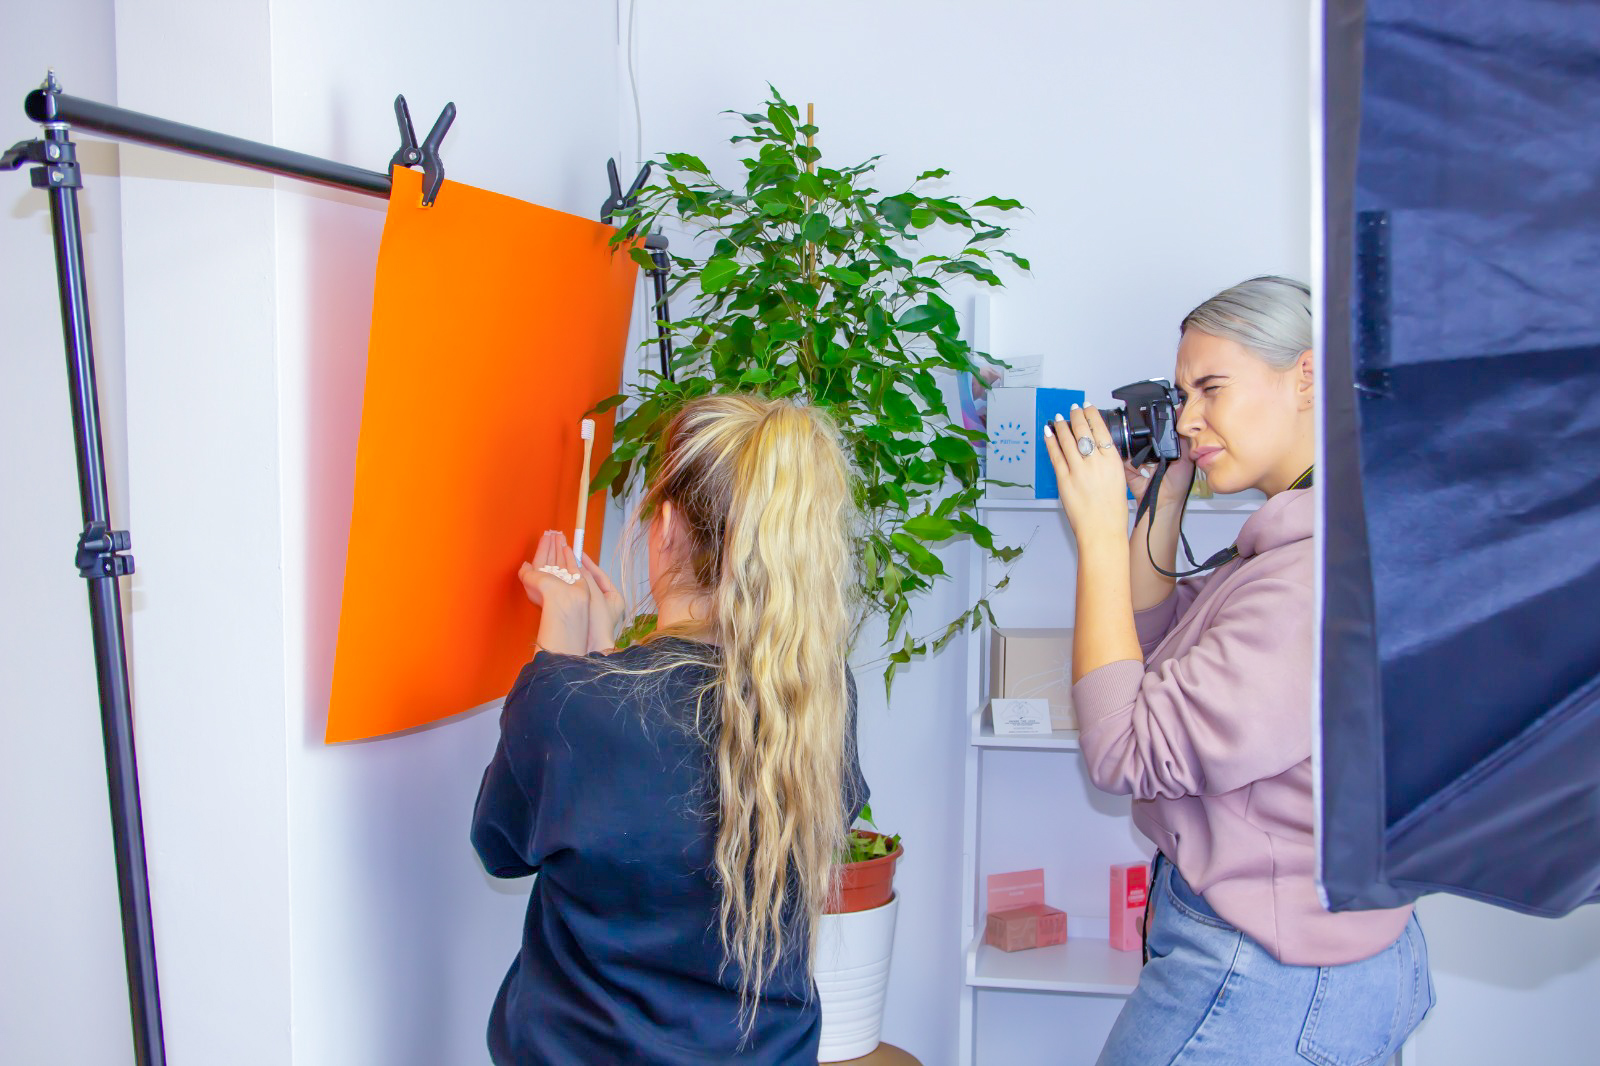 Adventure Digital Marketing Agency Offices Being Used For Photography